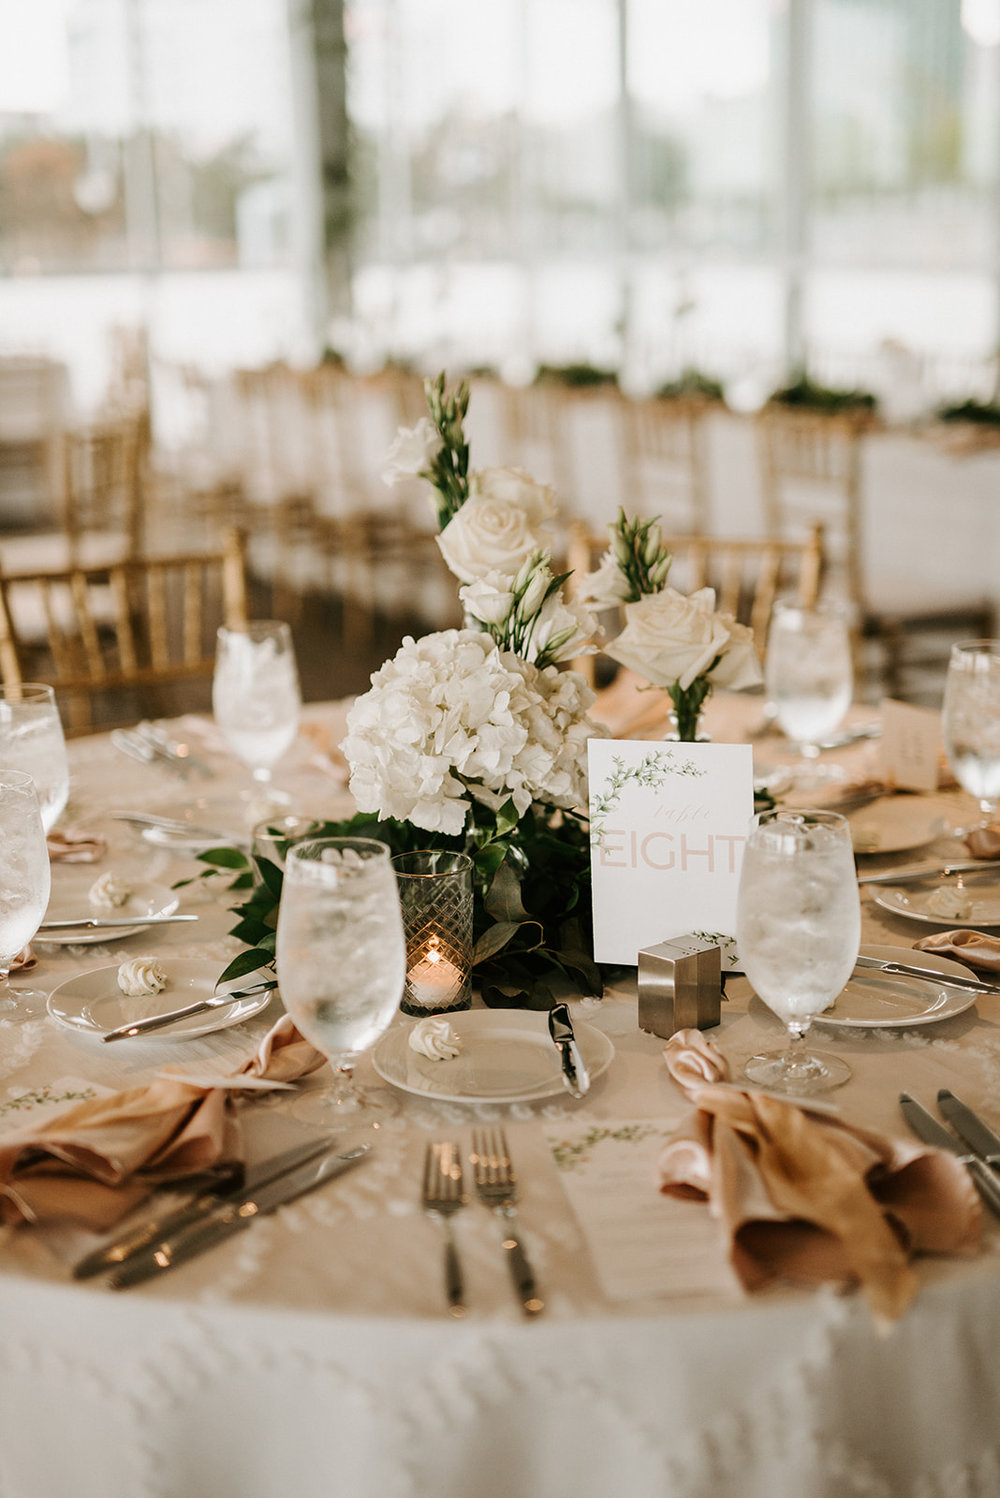 custom wedding planners detroit michigan event design paper goods florals neutral place settings